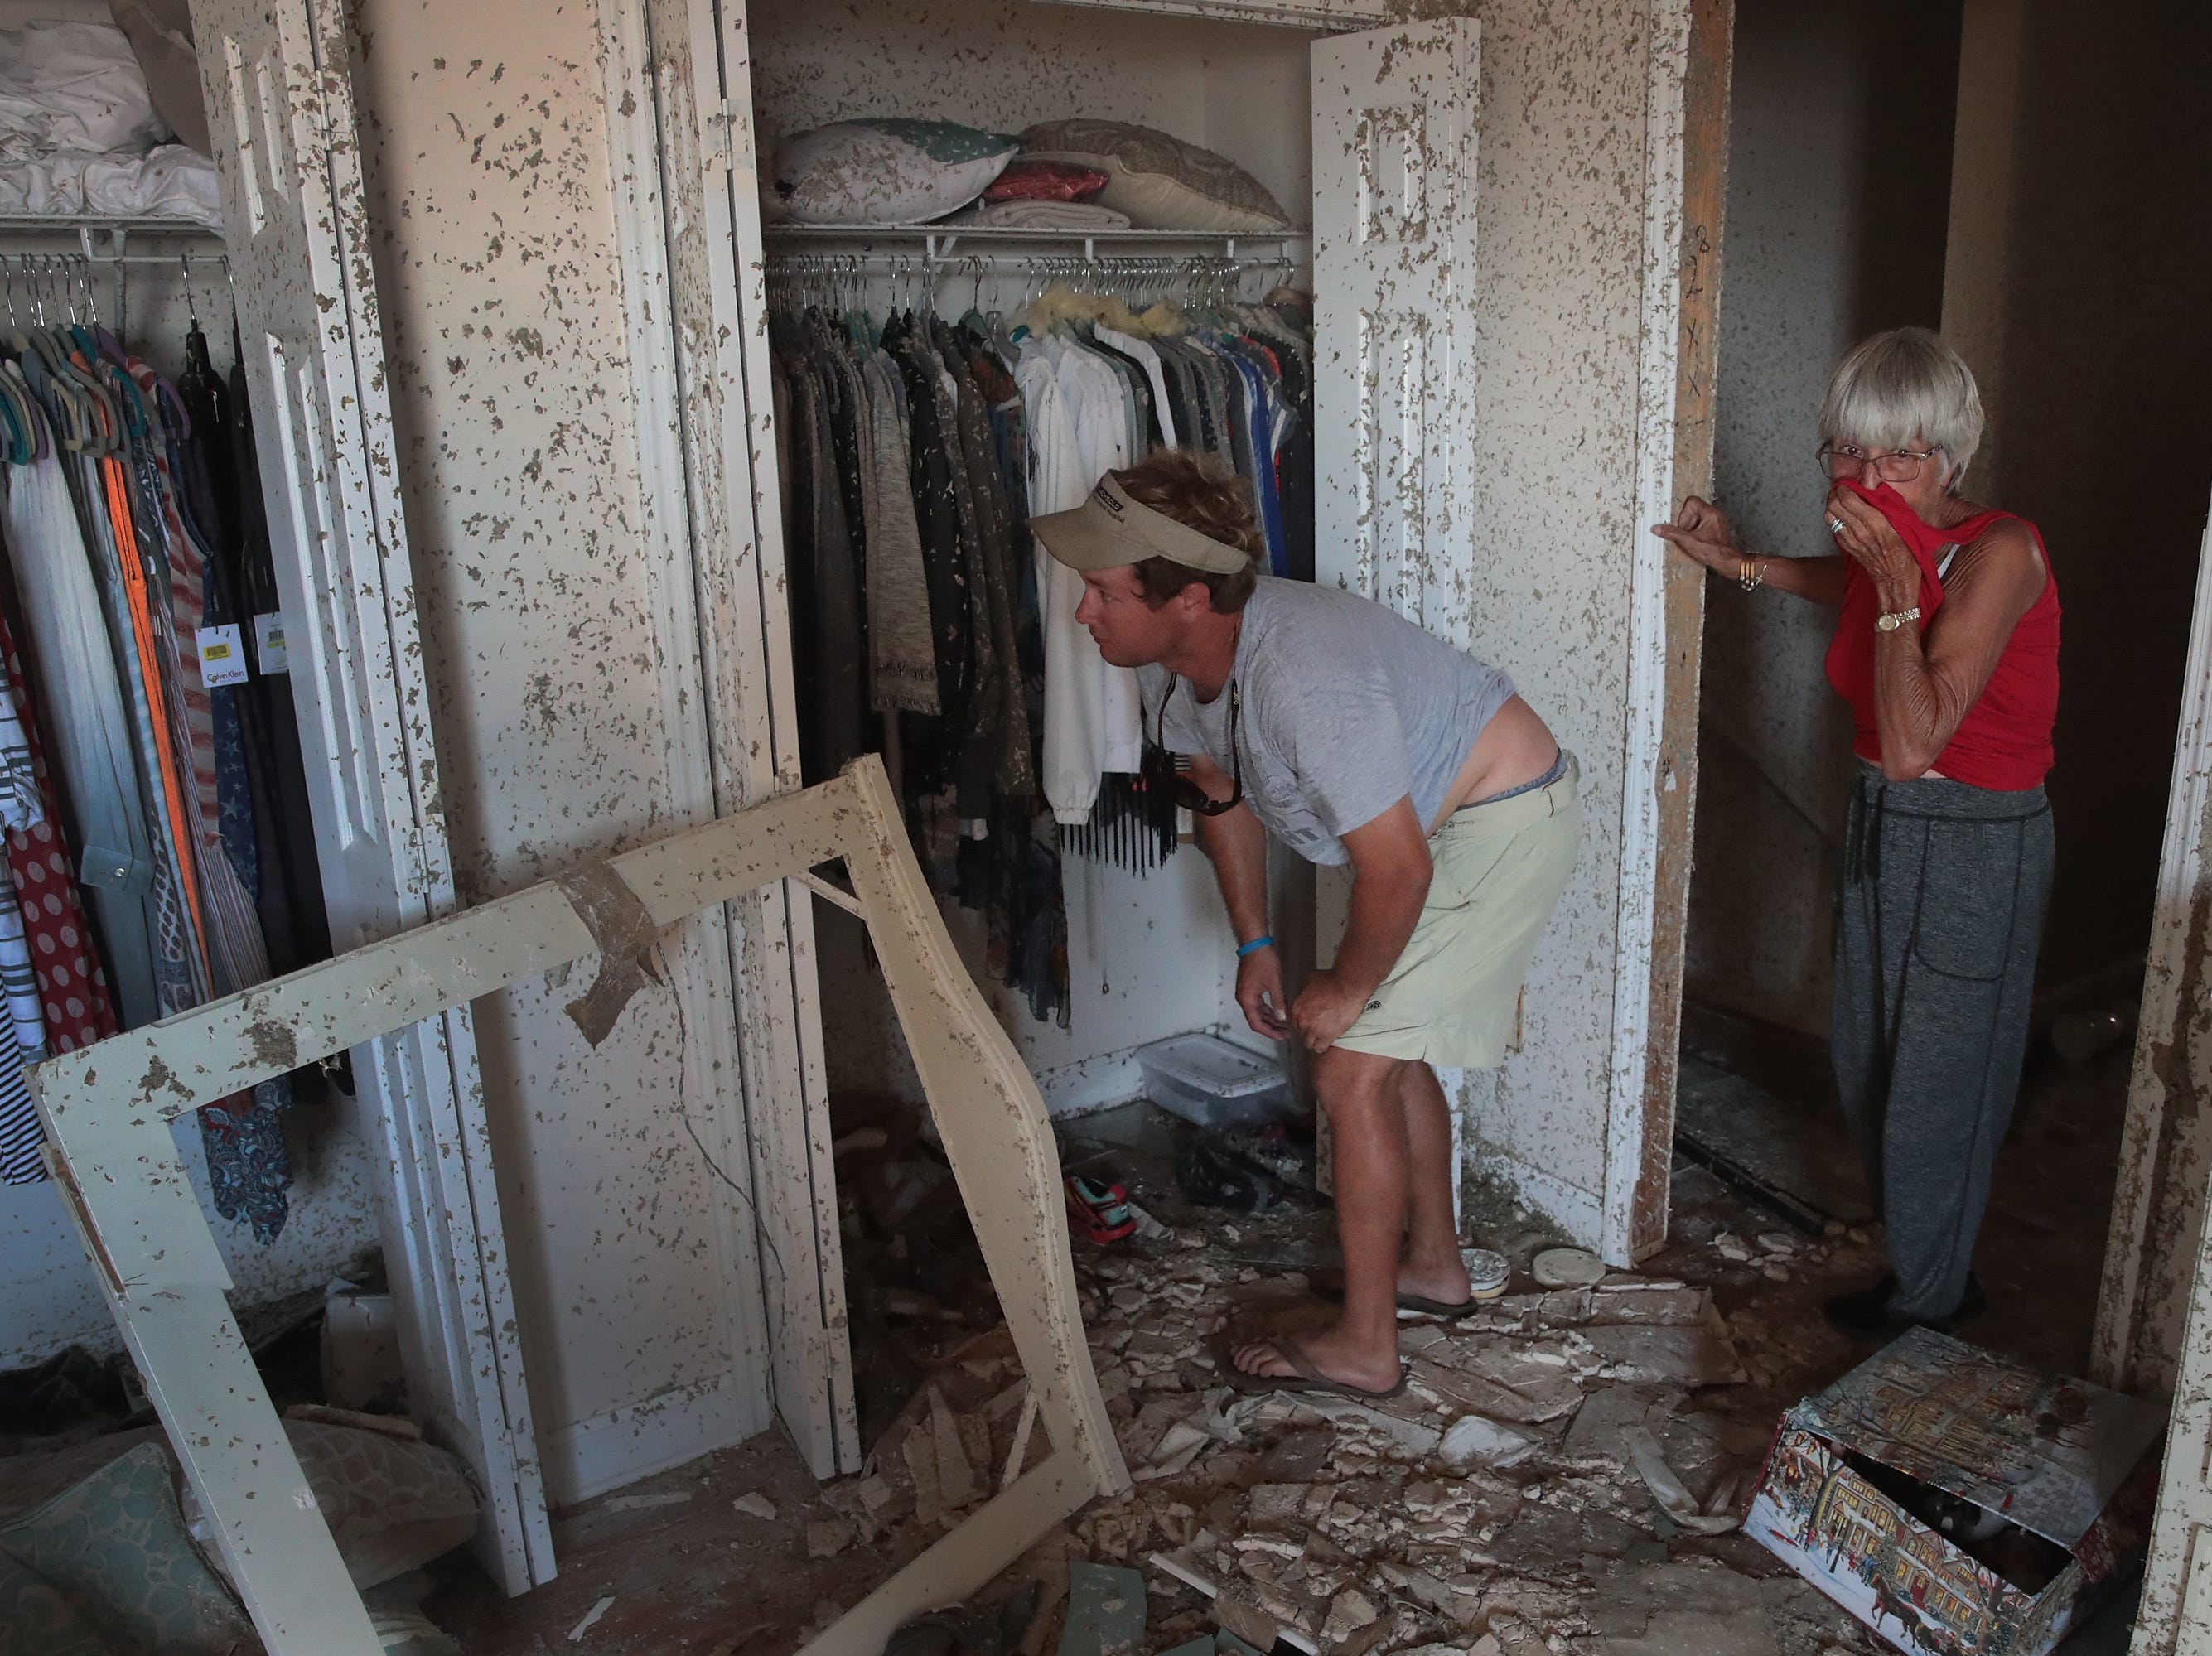 John McClenny helps LeClaire Bryan, mother of country music artist Luke Bryan, recover items from her home after it was severely damaged by Hurricane Michael on Oct. 19, 2018 in Mexico Beach, Fla.